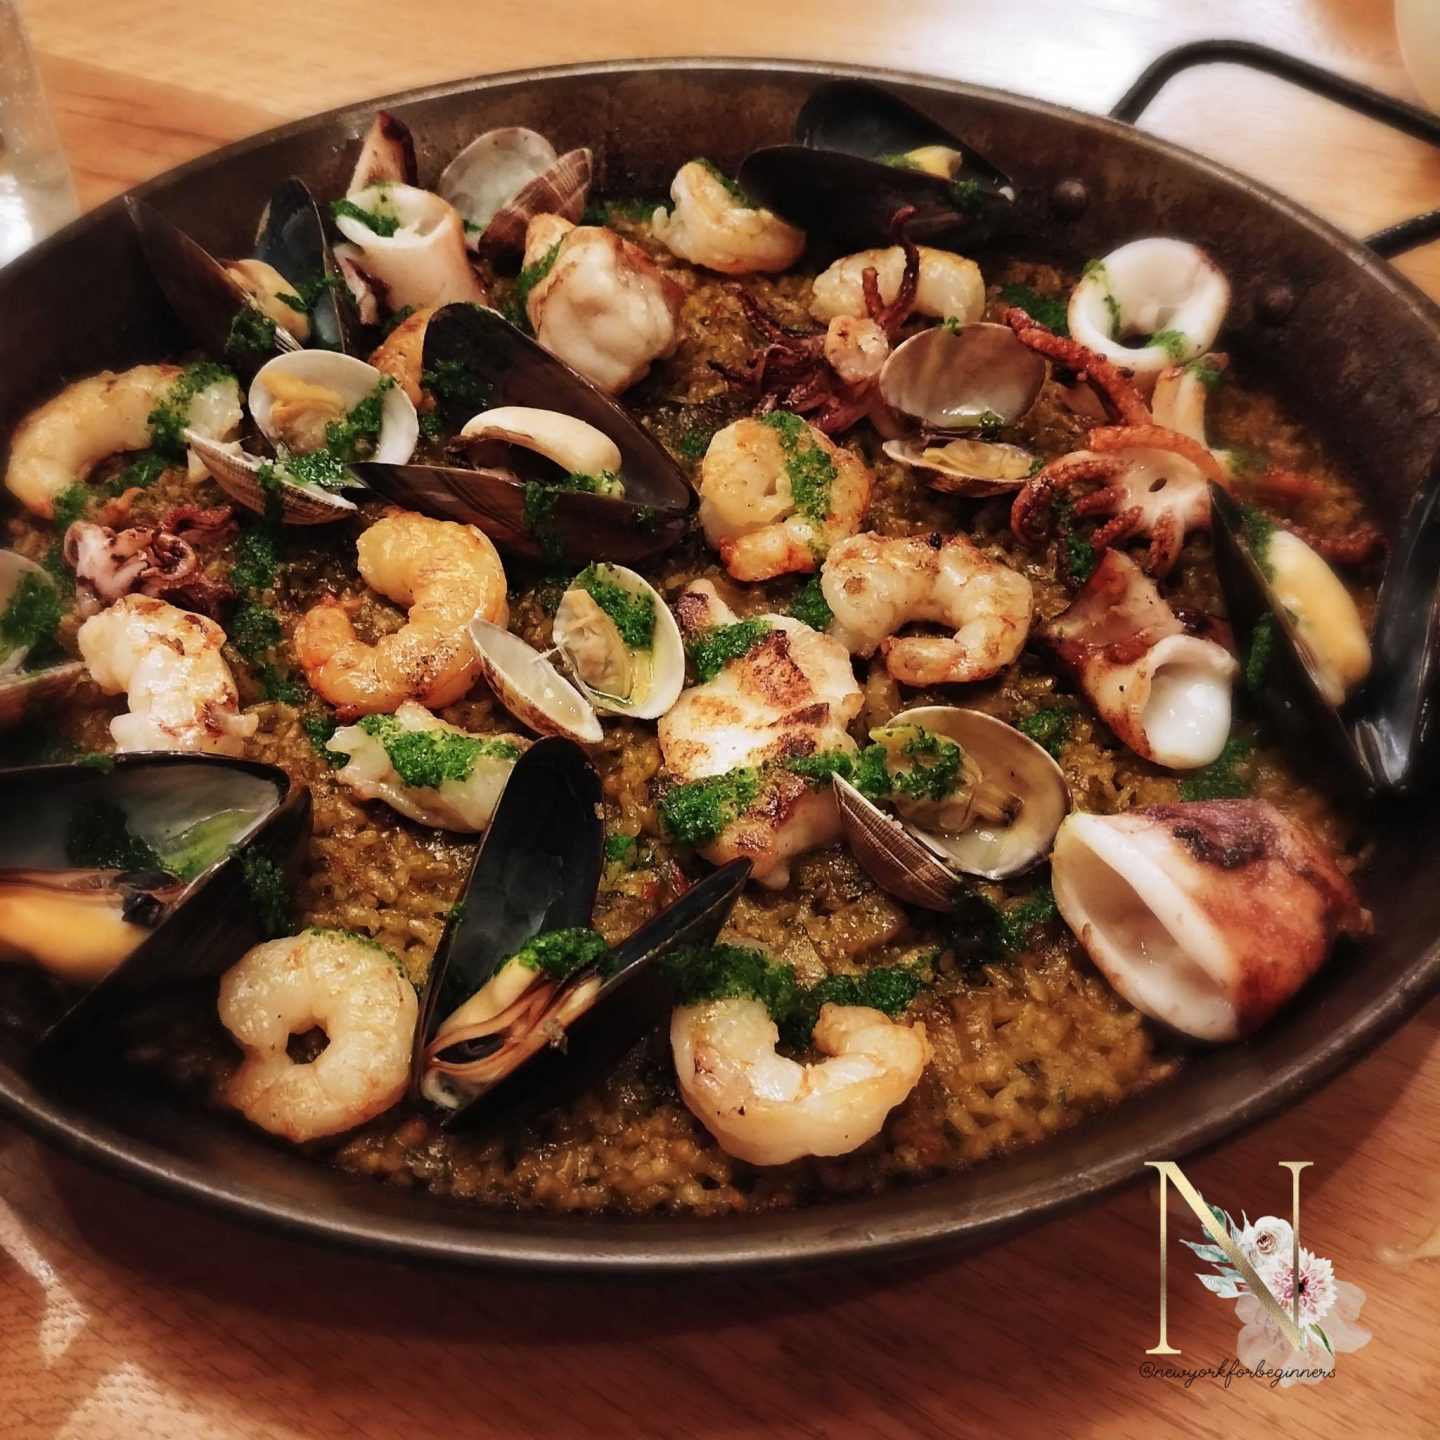 Spanish seafood paella at Boqueria